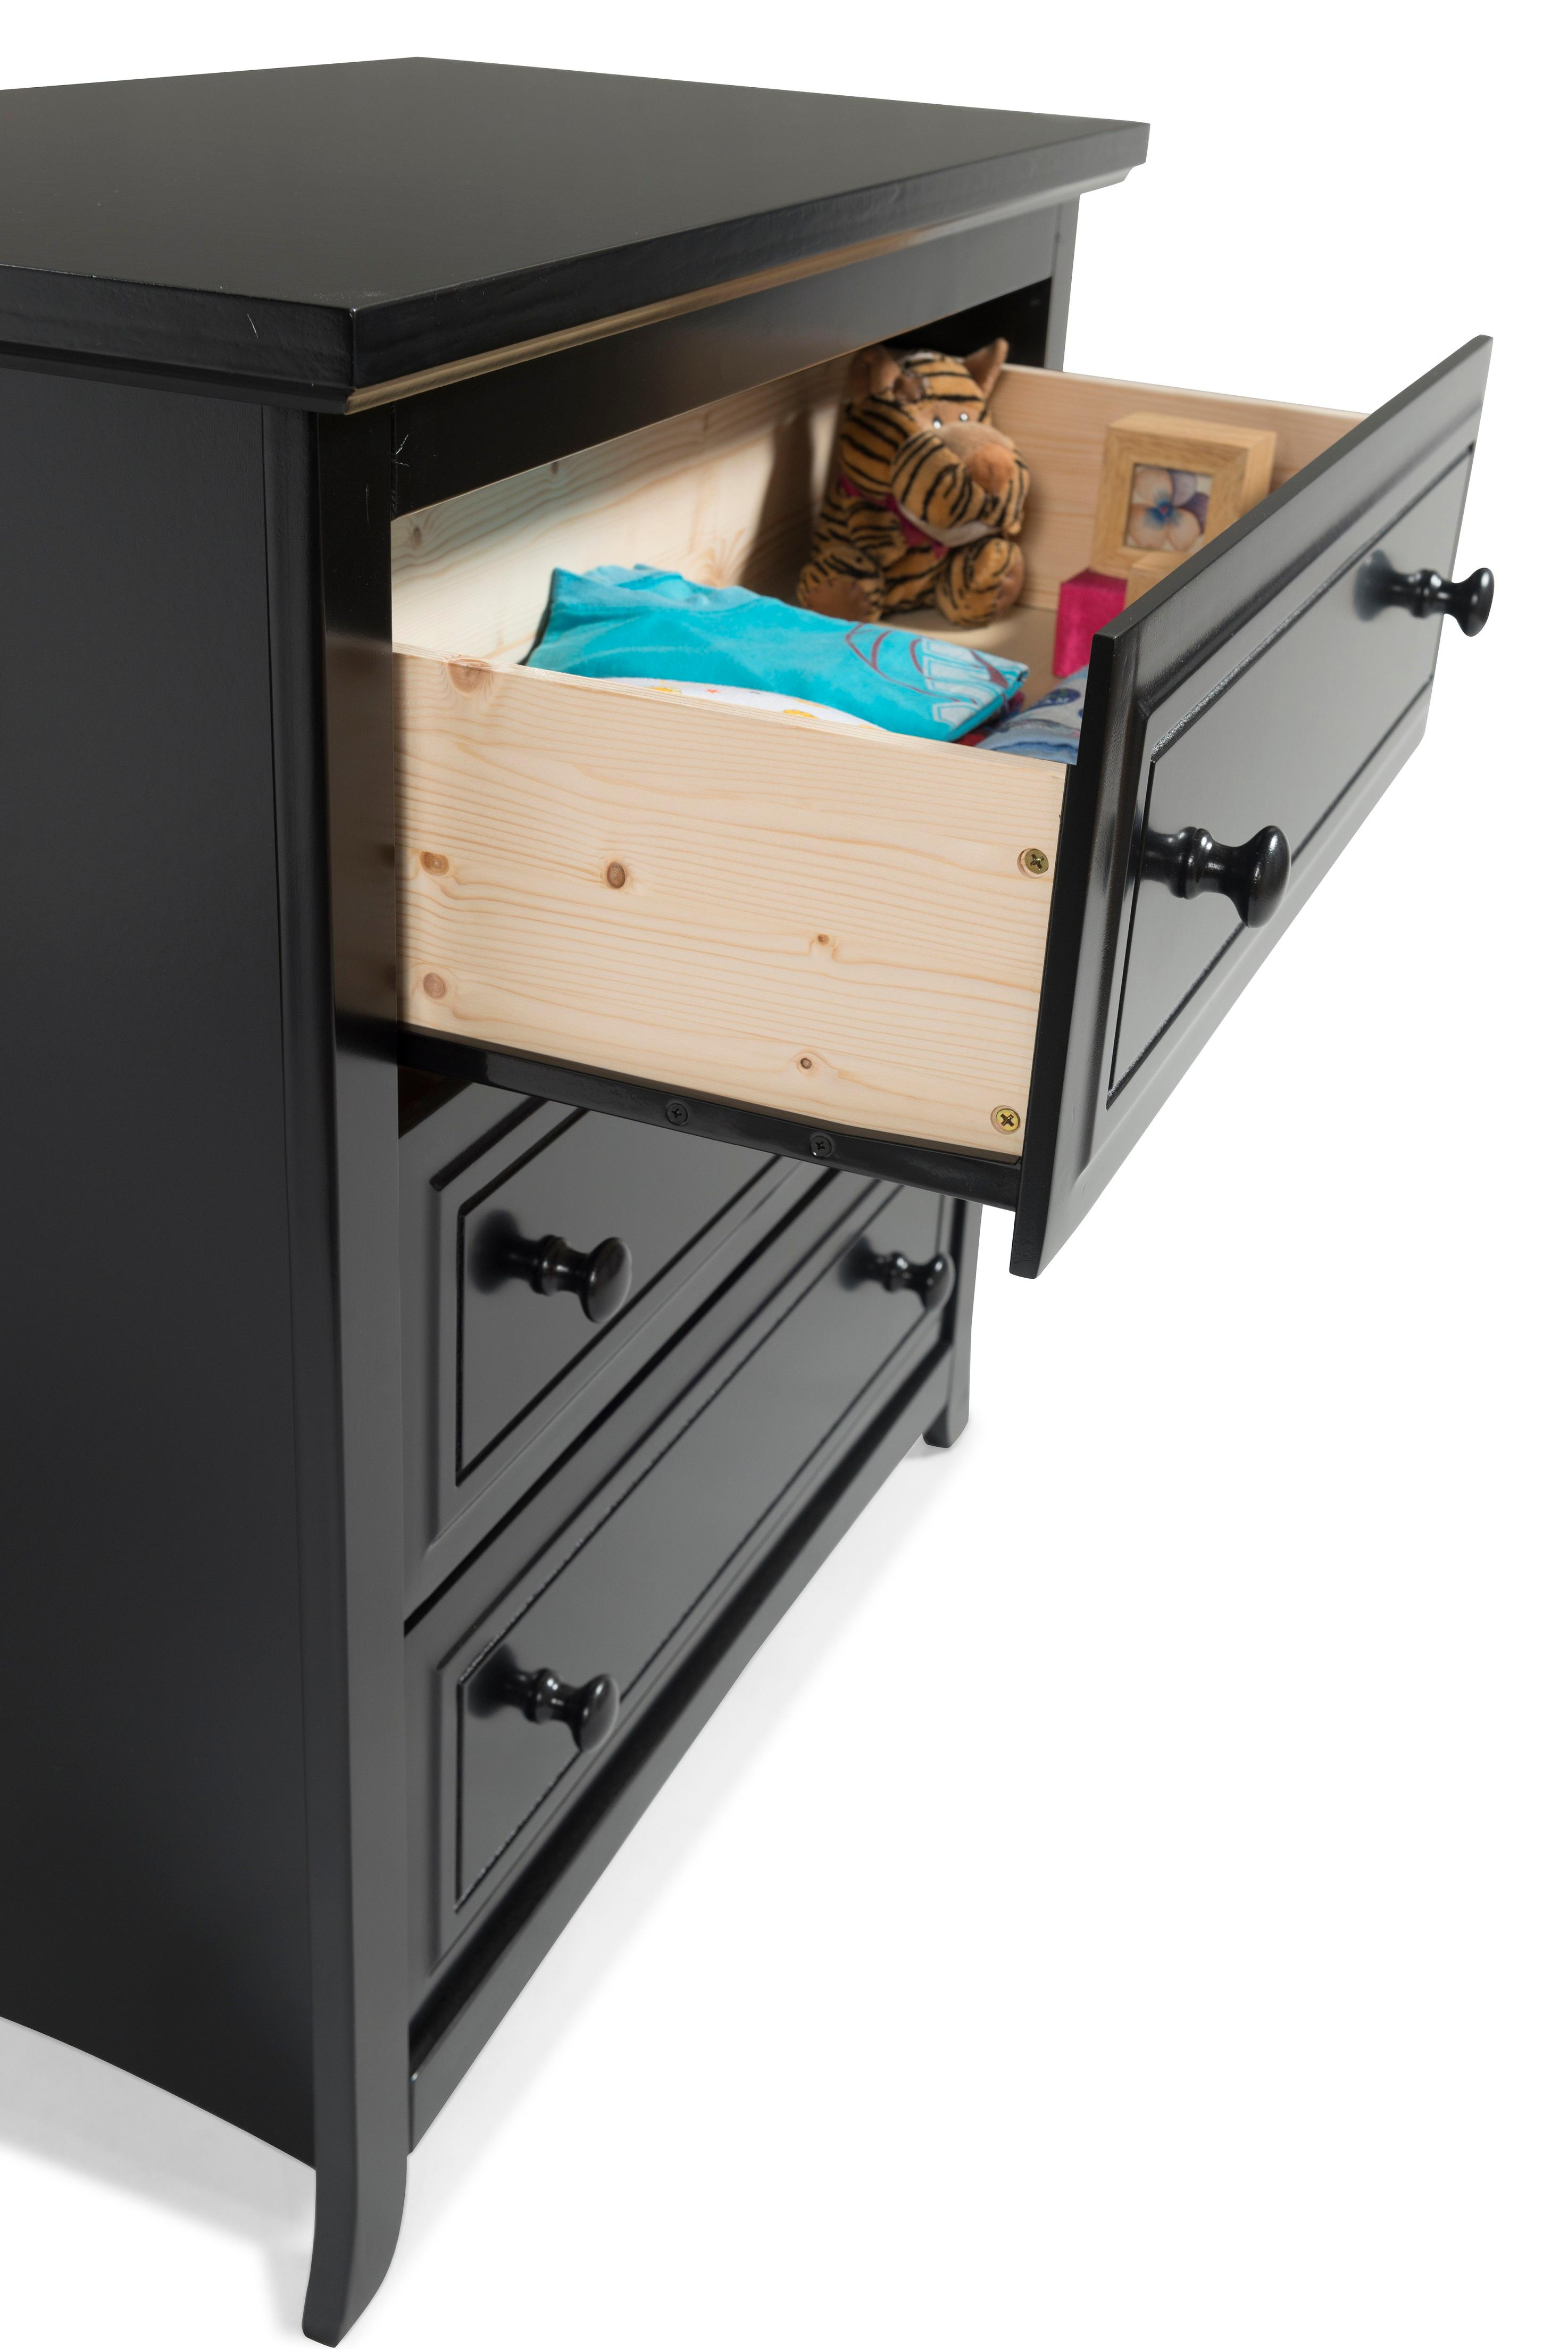 Amazon.com : Graco Kendall 3 Drawer Chest, Black, Kids